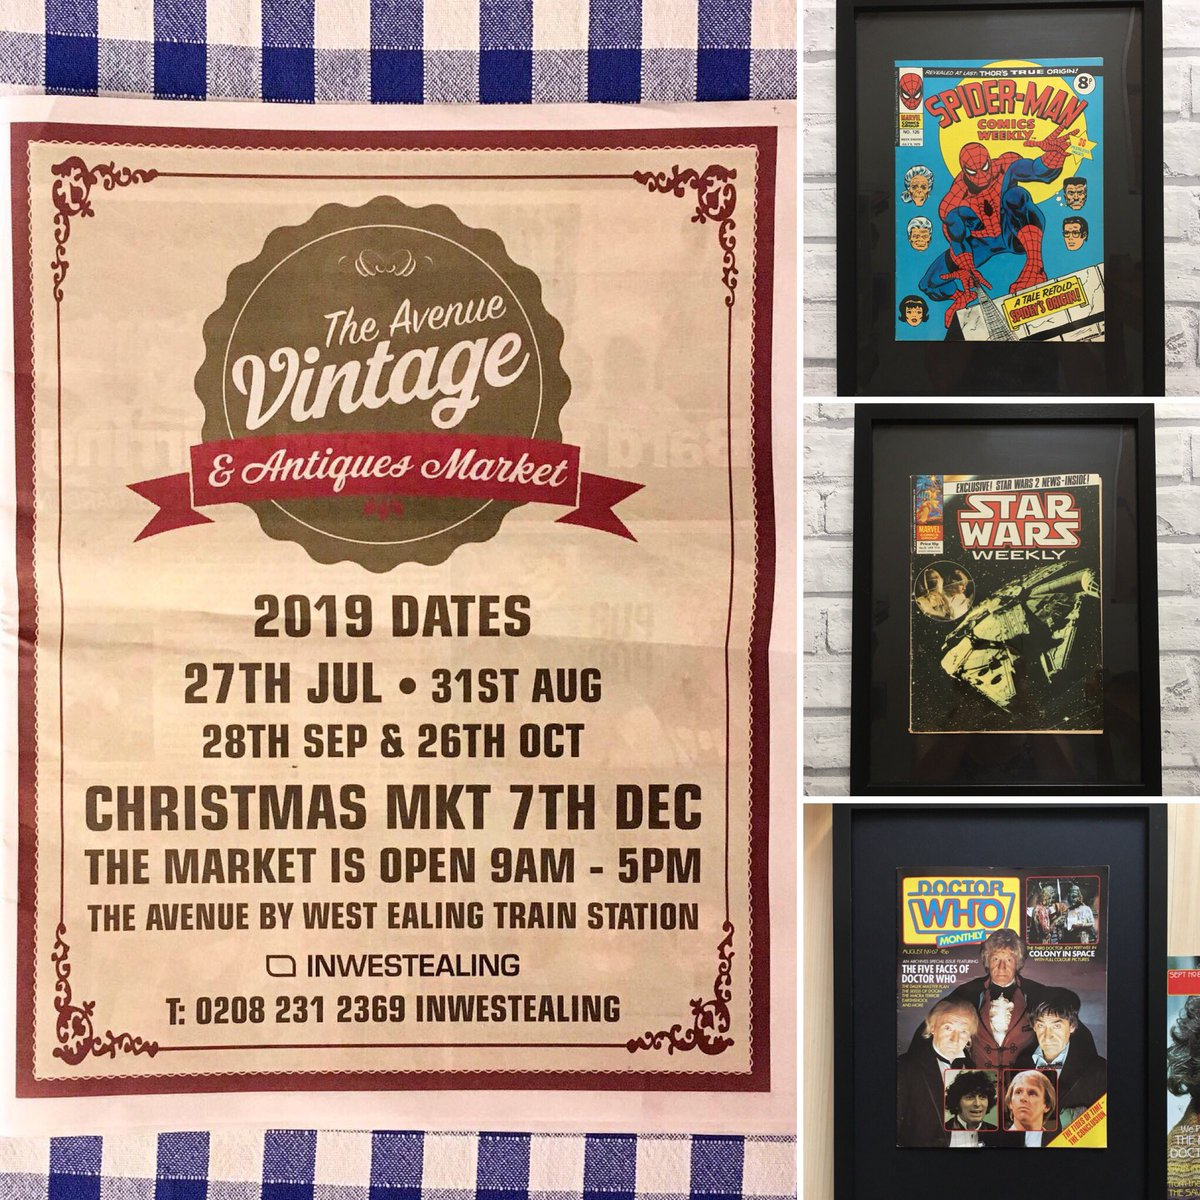 The Avenue Vintage & Antique Market is ON in West Ealing tomorrow, Sat 27th  Come along and tell us how hot you've been- bet I win 😬  @EalingNewsExtra #Ealing @InWestEaling @ilovemarkets https://t.co/M8cJpAbK5s